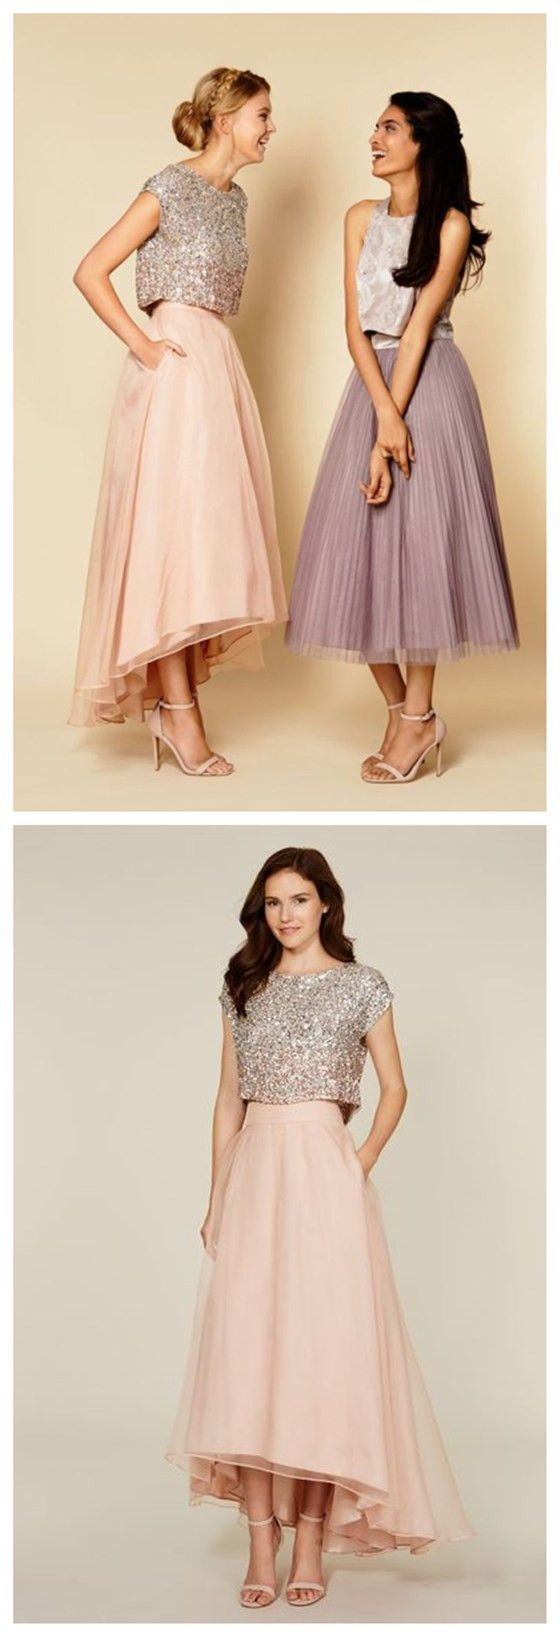 Tea length party vintage prom dresses for girls popular bridesmaid